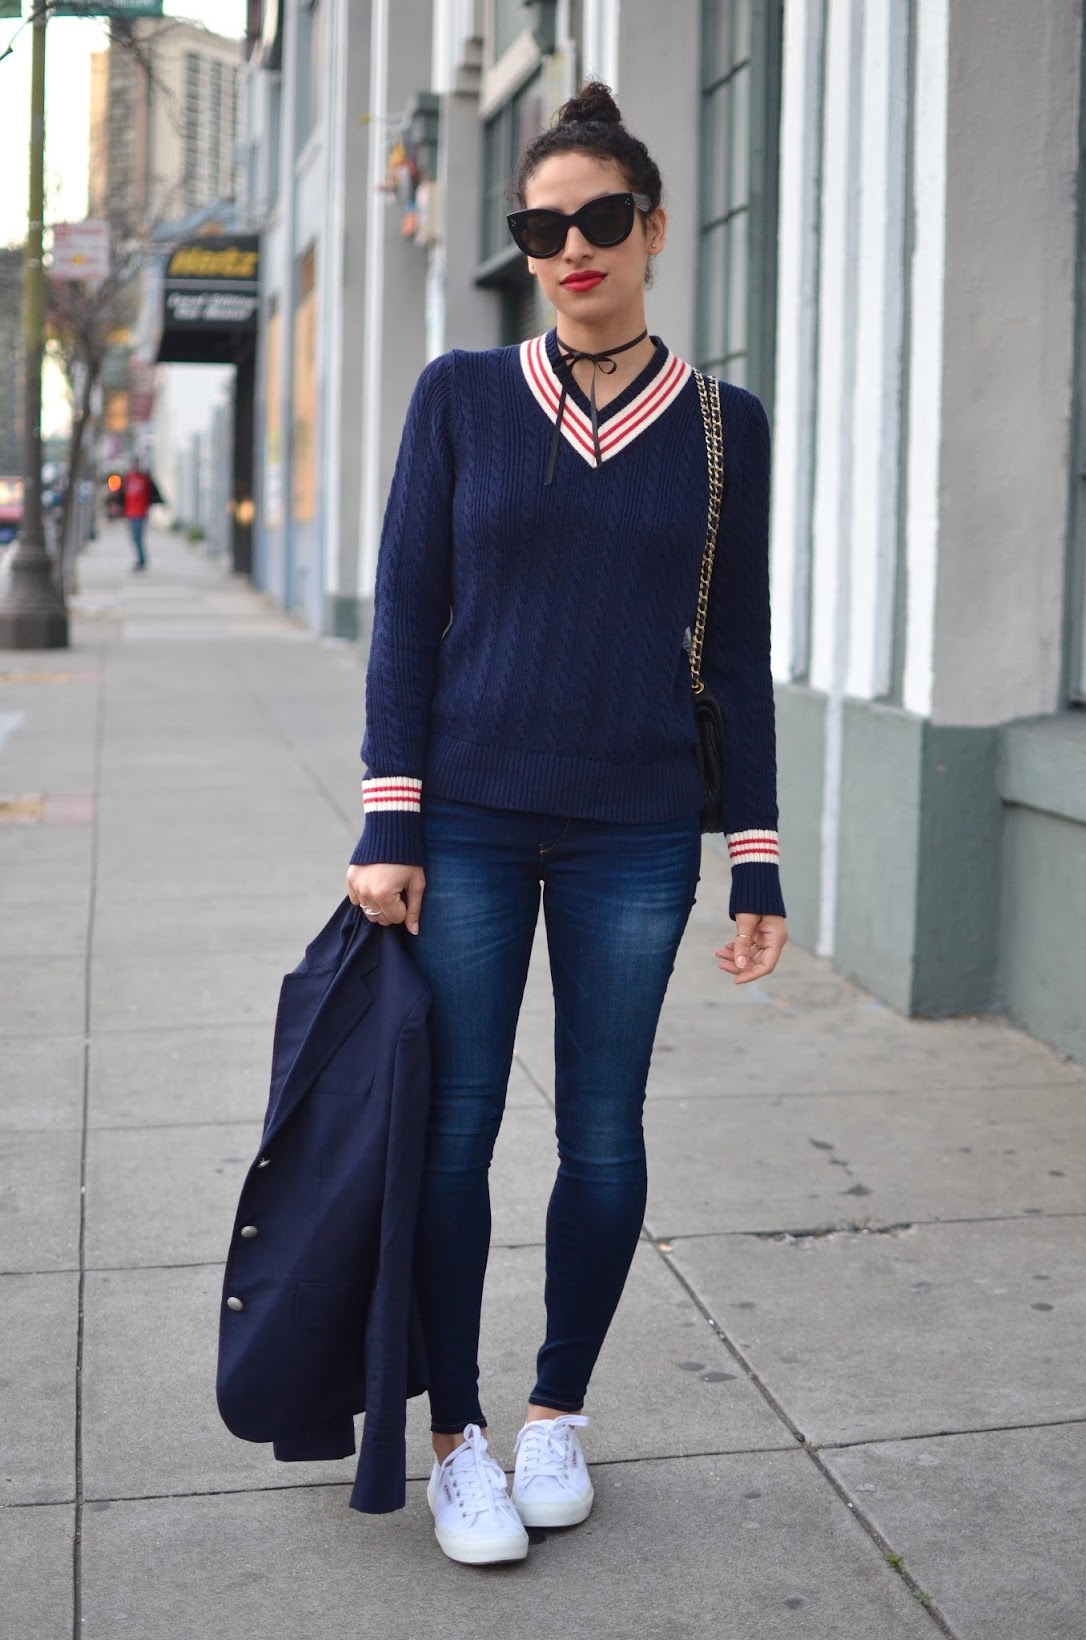 cricket sweater, how to wear a cricket sweater, Ines de la Fressange x Uniqlo cricket sweater, how to style white canvas sneakers, white sneakers, ribbon as a necklace, all navy, Unqilo, True Religion, Céline cateye sunglasses, Estee Lauder red lipstick